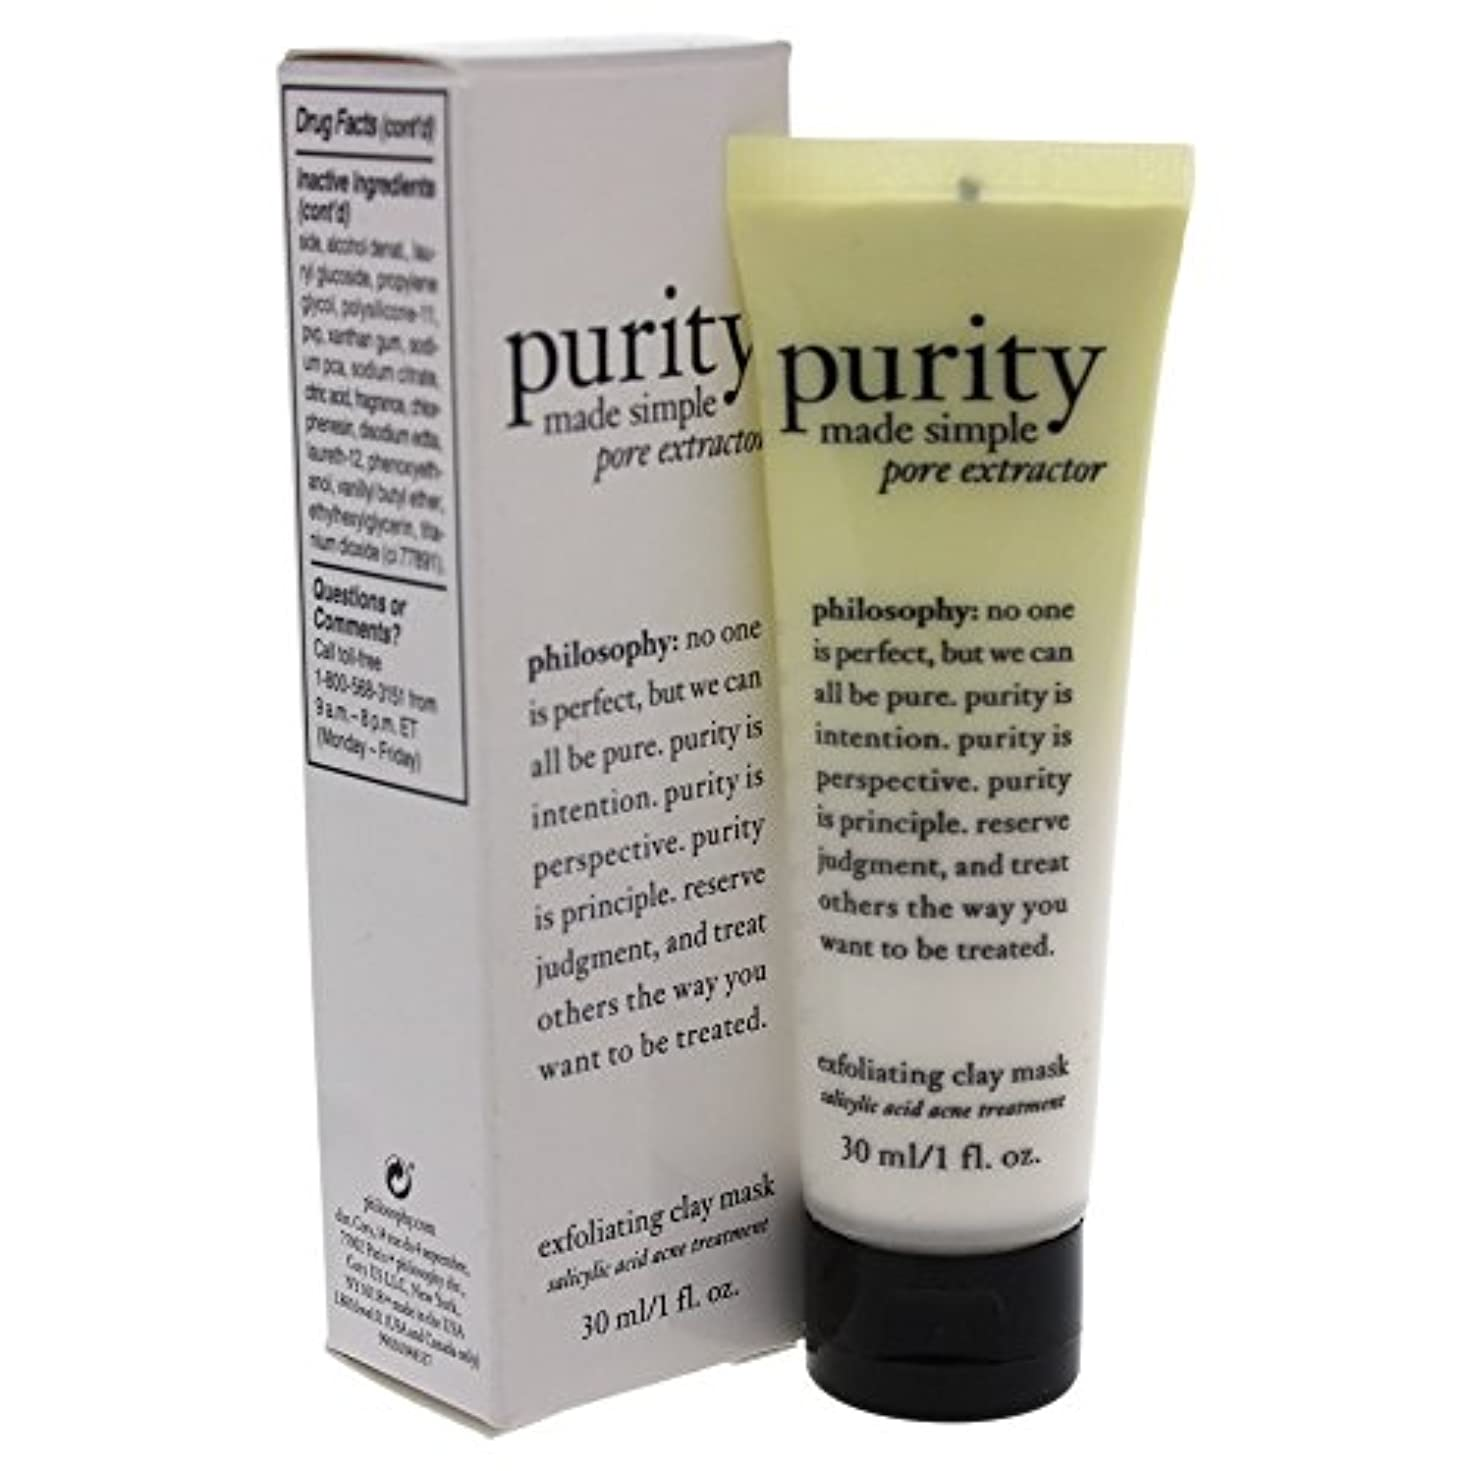 内なる使役役員Purity Made Simple Pore Extractor Exfoliating Clay Mask